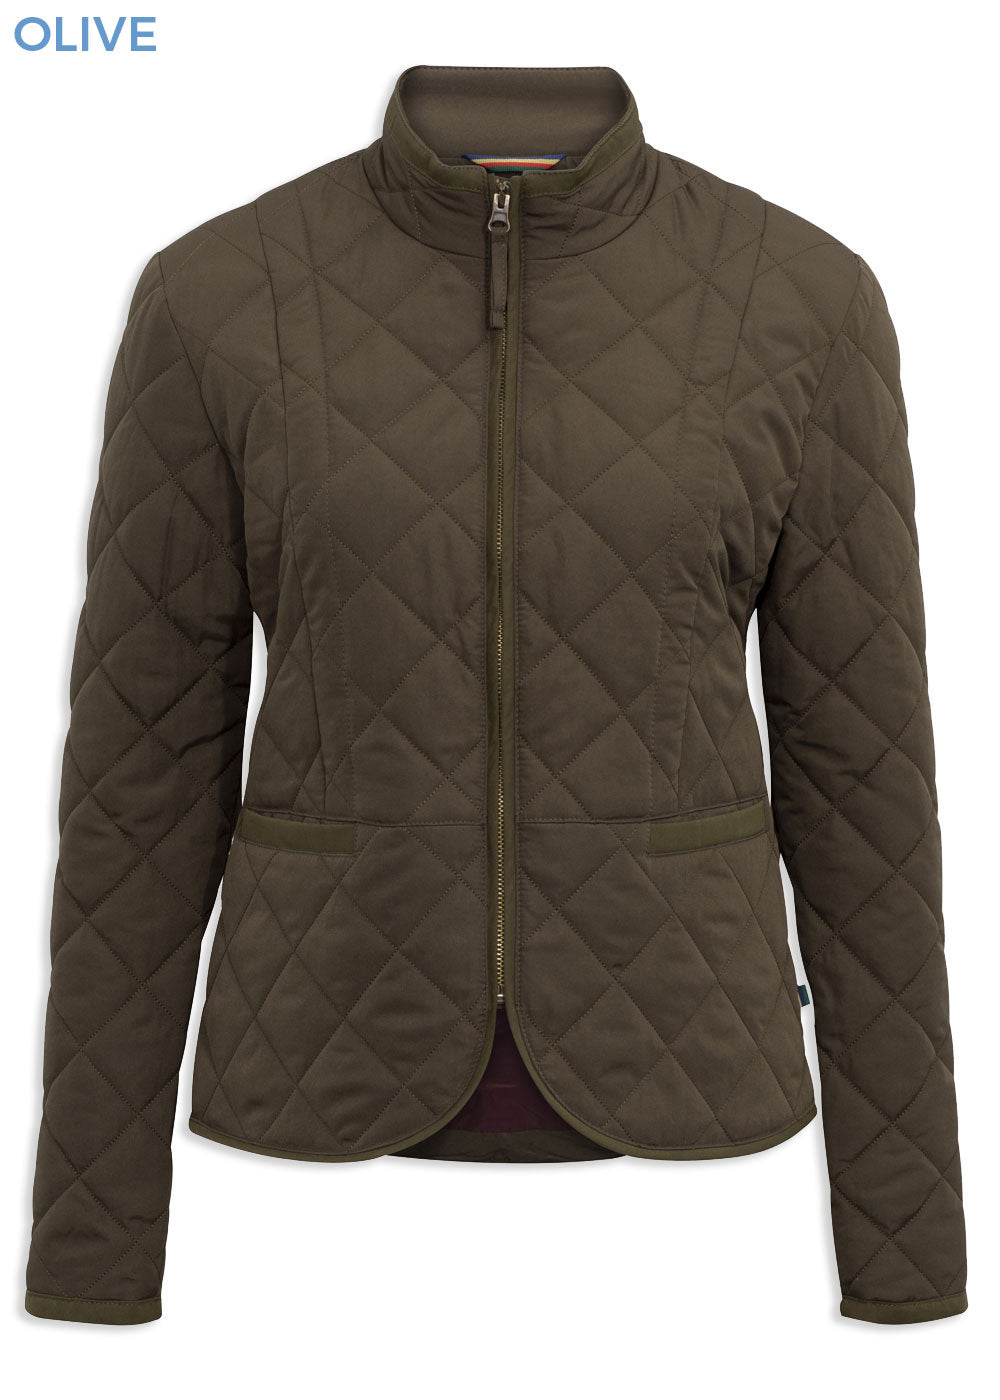 Olive Alan Paine Surrey Ladies Country Quilt Jacket